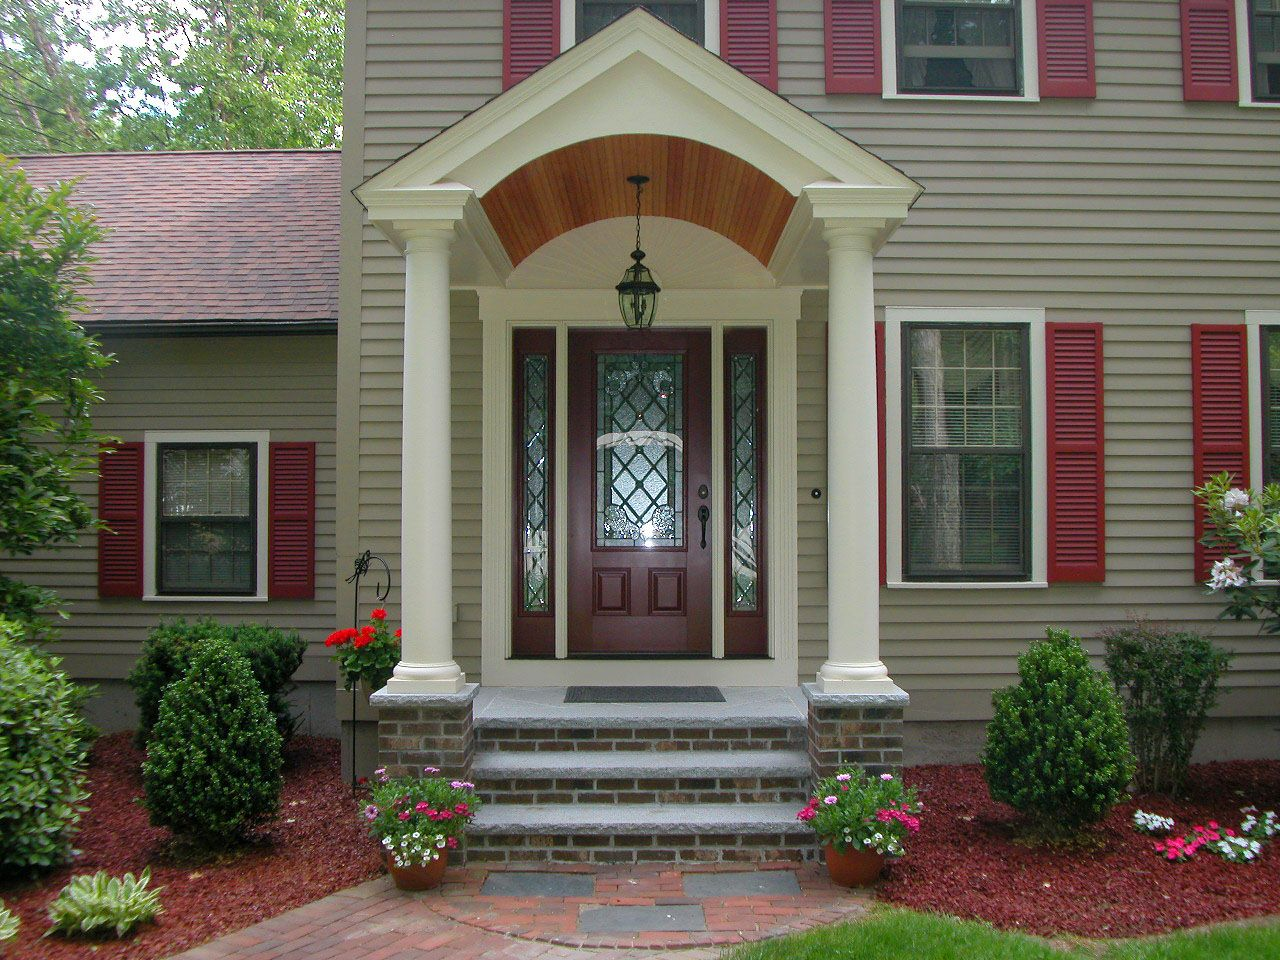 The Third Front Step Idea That Makes The Exterior Of Your Home Looks More  Amazing IsThe Third Front Step Idea That Makes The Exterior Of Your Home